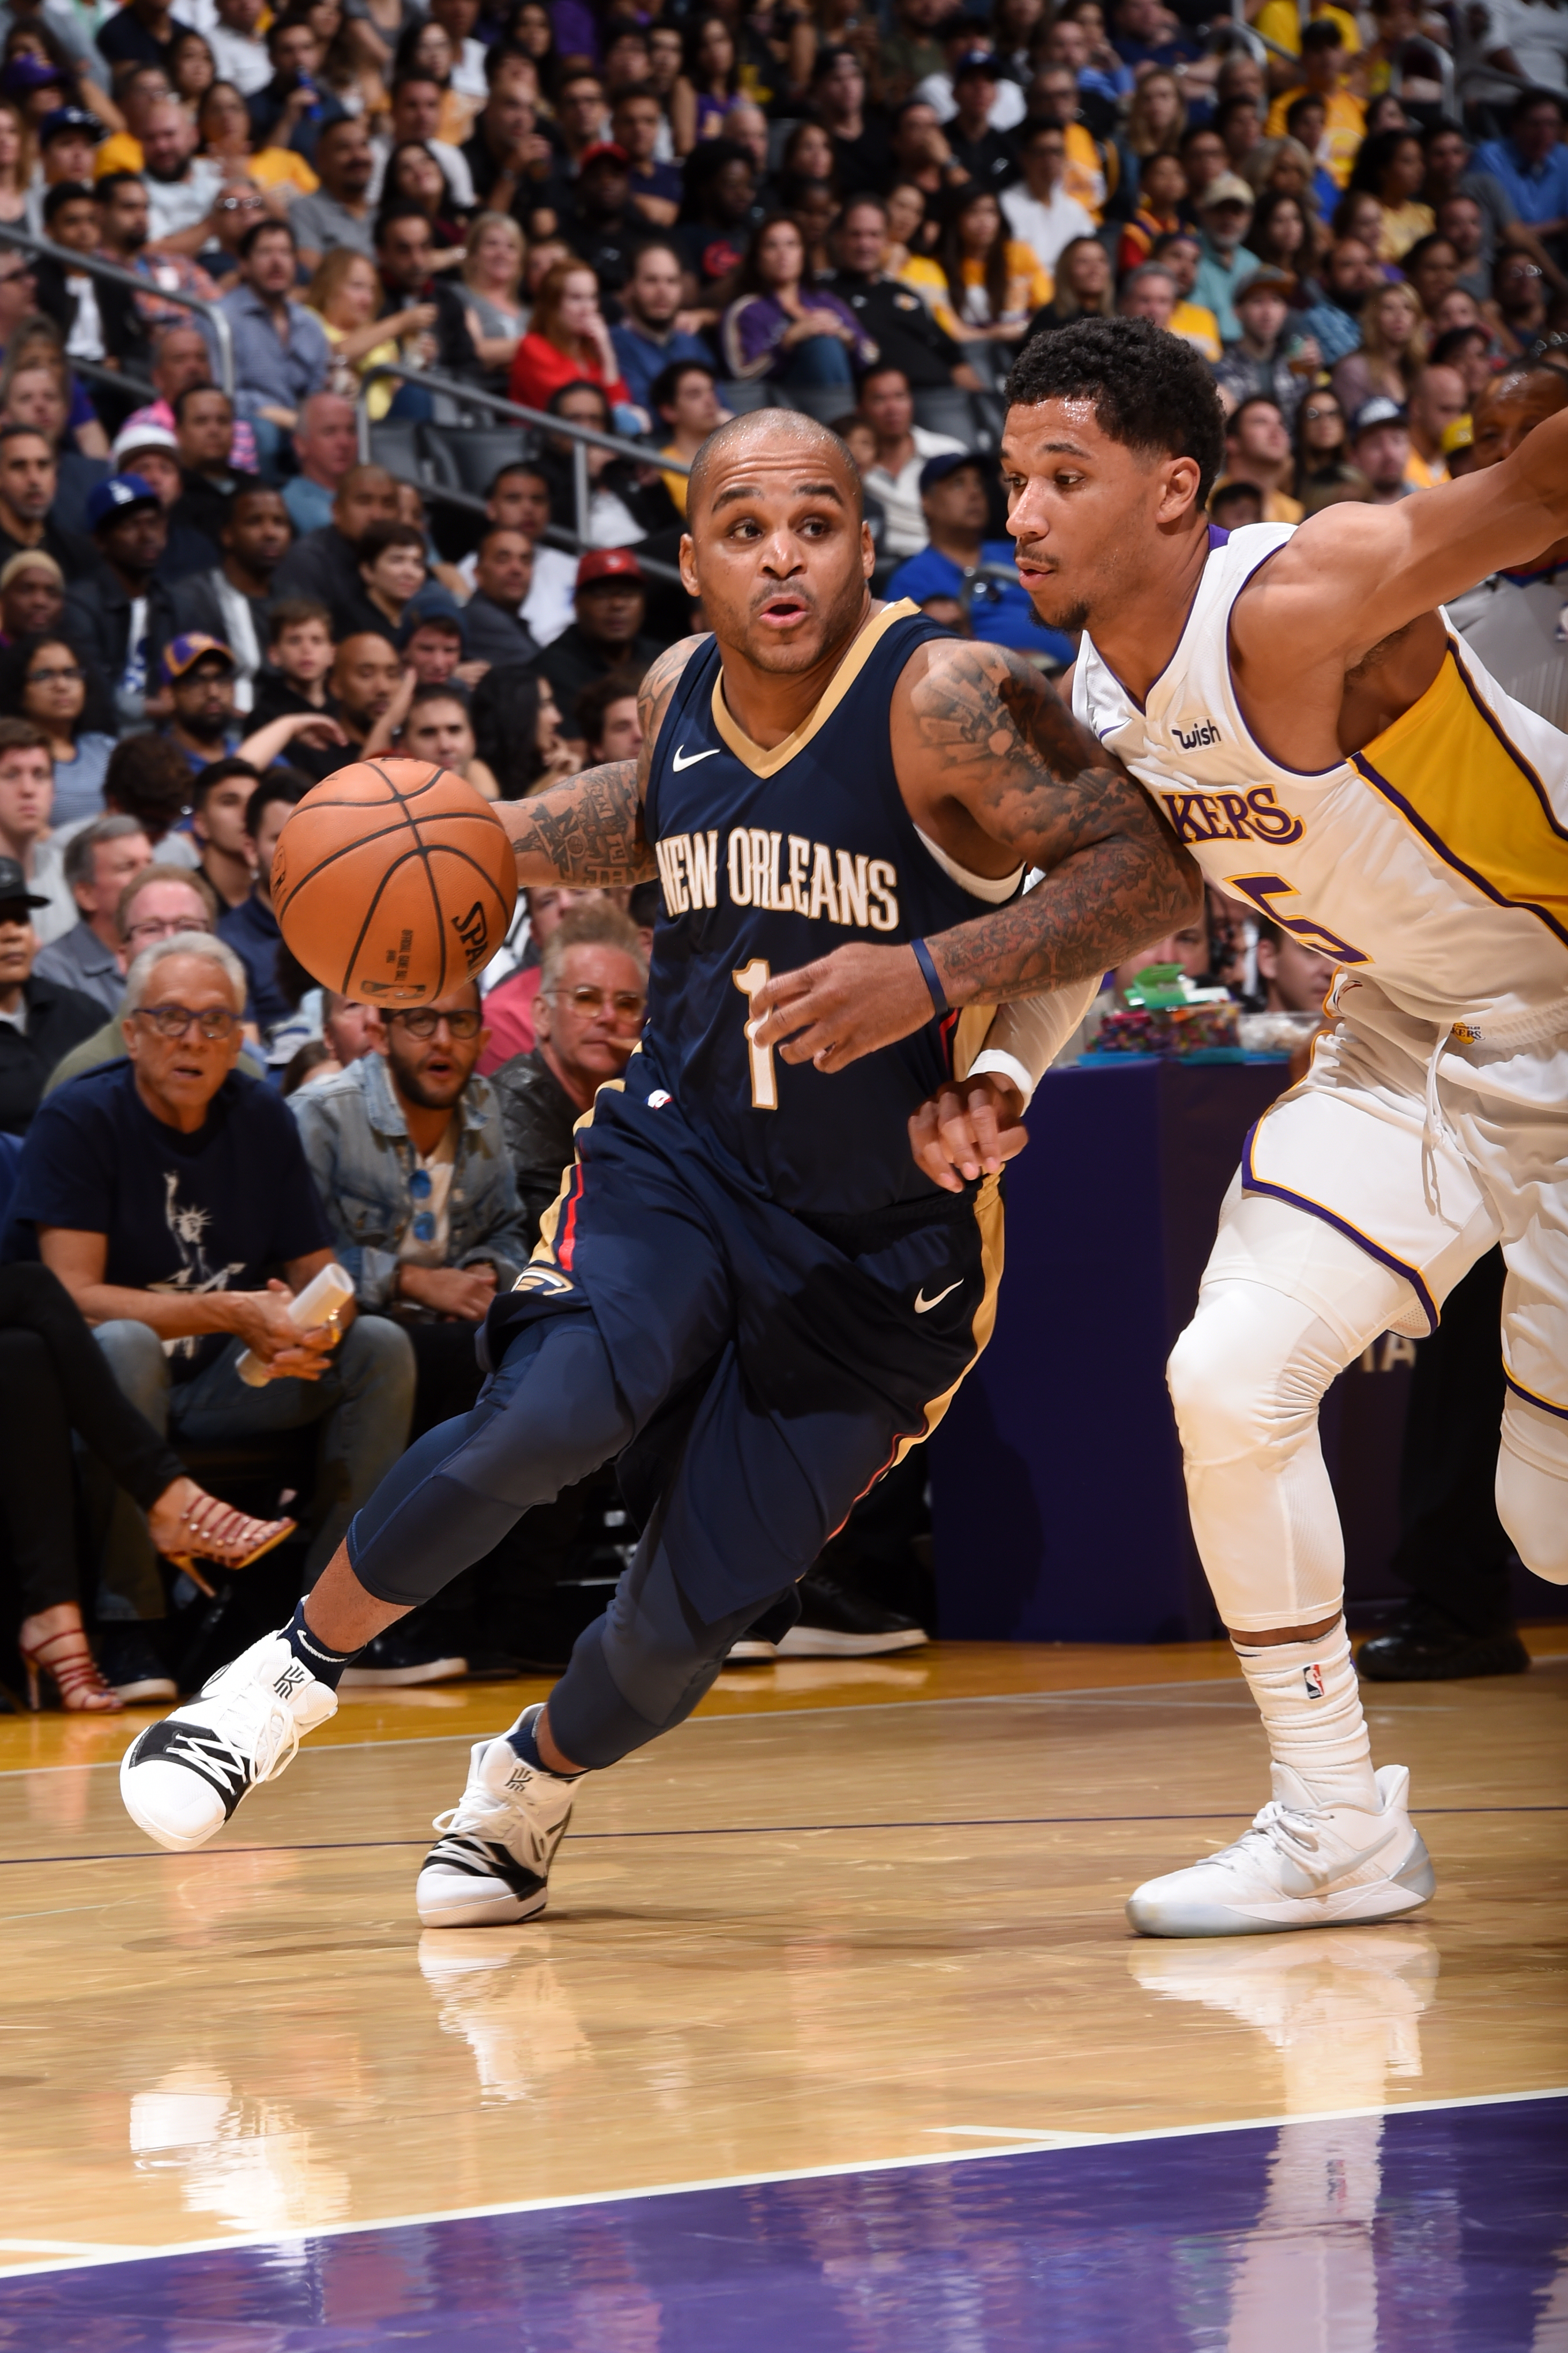 Jameer Nelson steps up in pinch for New Orleans Pelicans